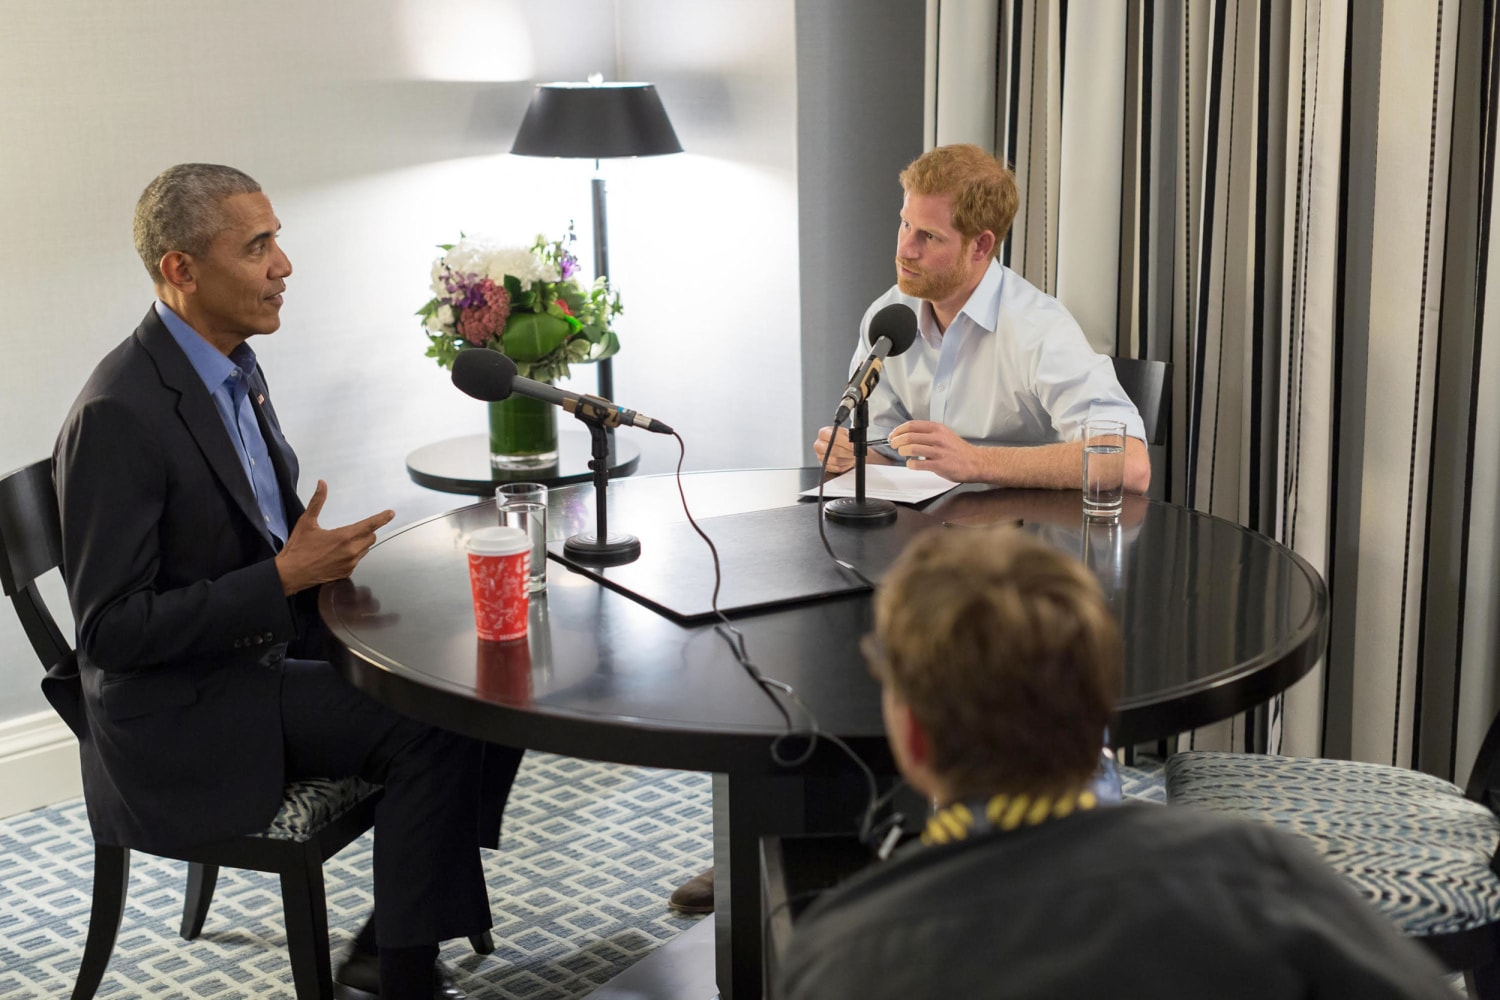 'Nervous' Prince Harry interviews Barack Obama for Radio 4